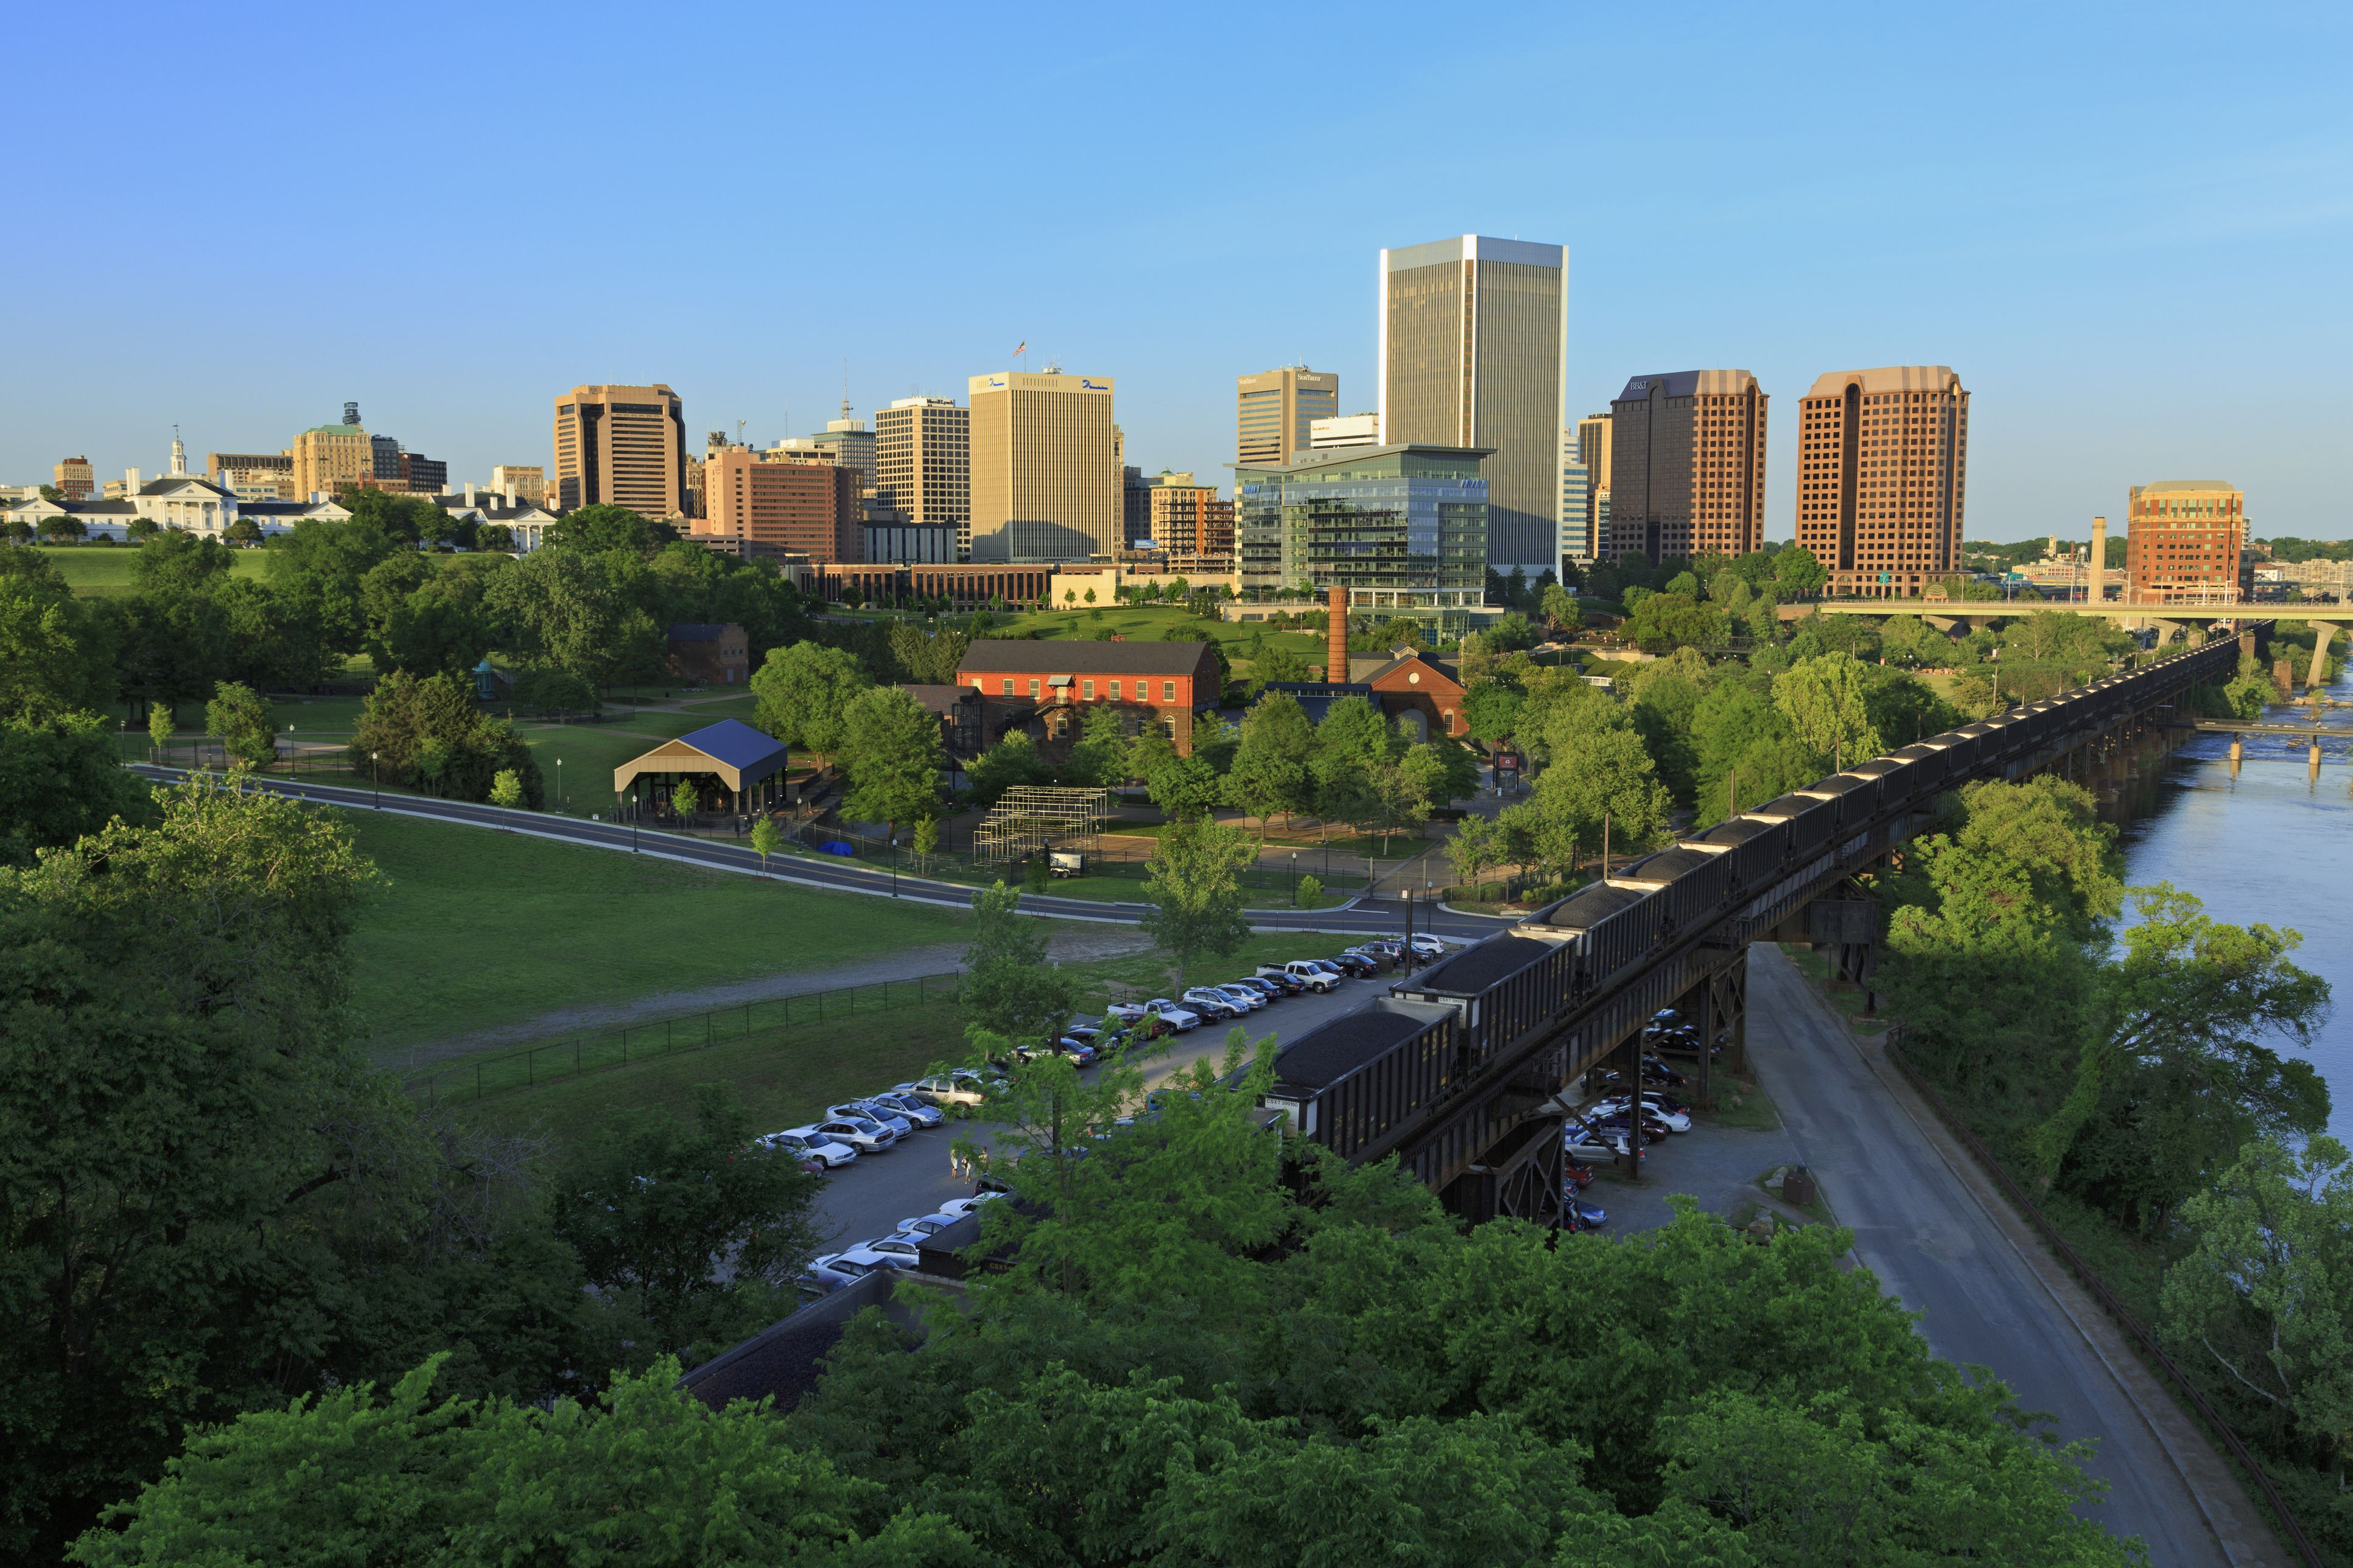 12 best attractions for couples in richmond, virginia